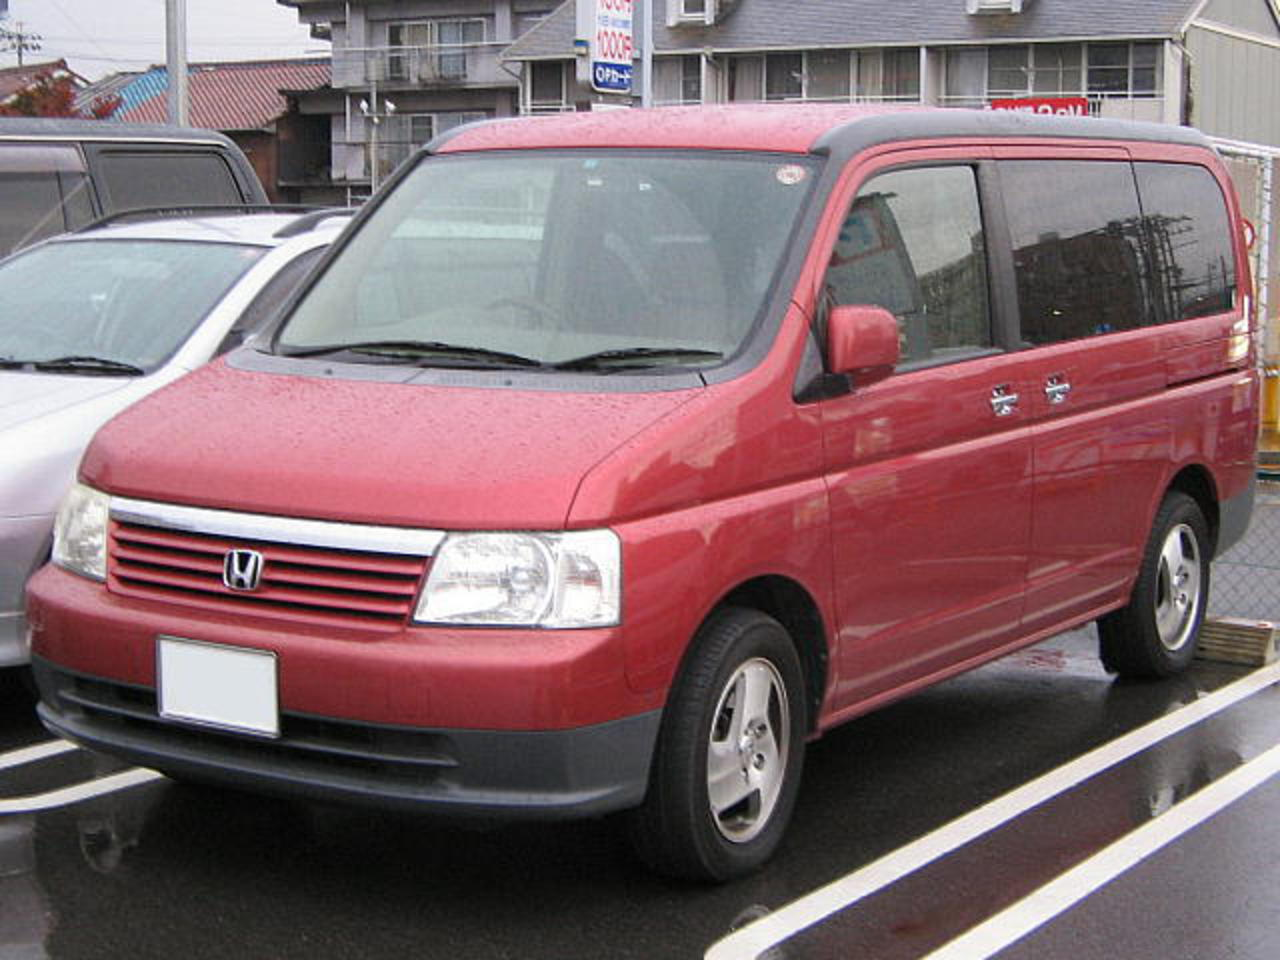 File:Honda-stepwgn 2nd-front.jpg. No higher resolution available.